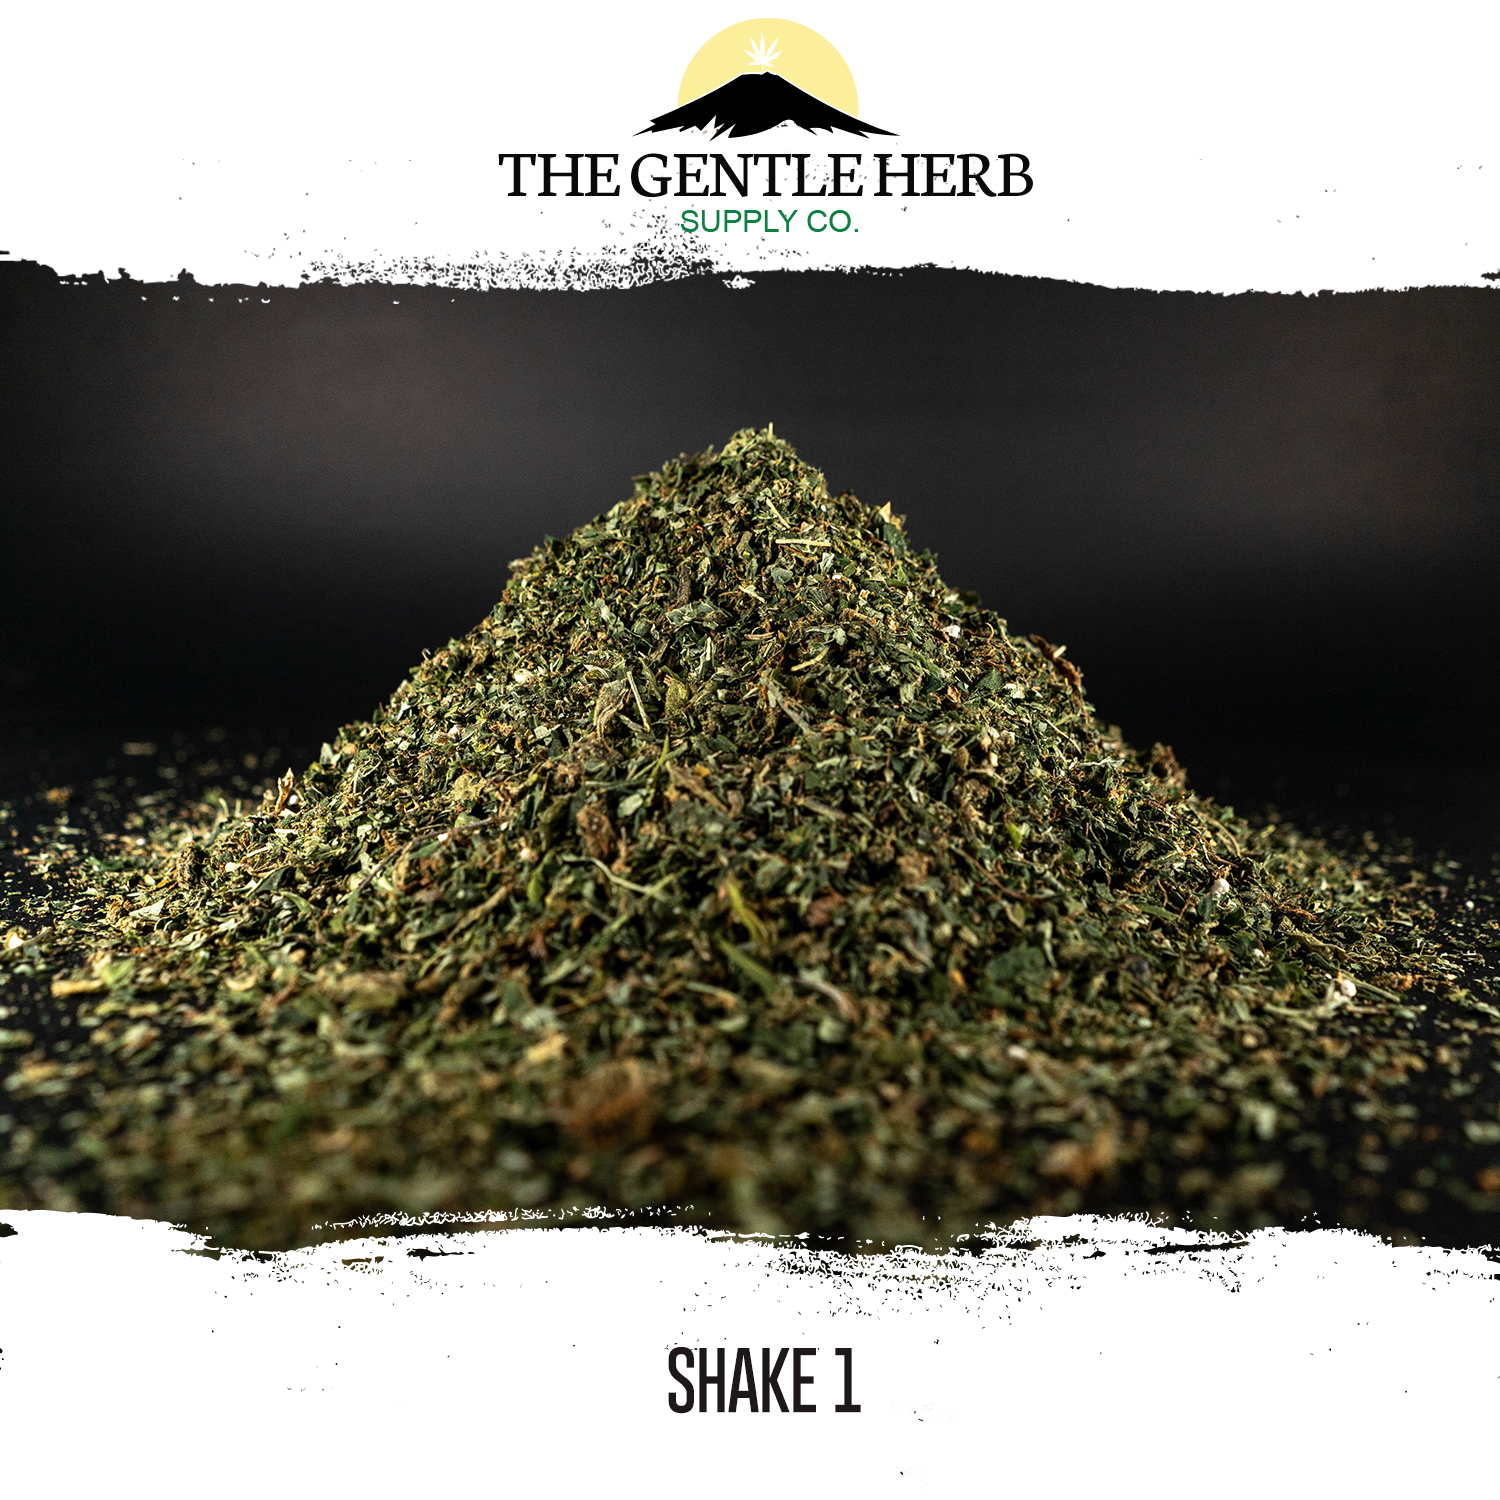 Premium Shake 28g by The Gentle Herb - Image © 2018 The Gentle Herb. All Rights Reserved.